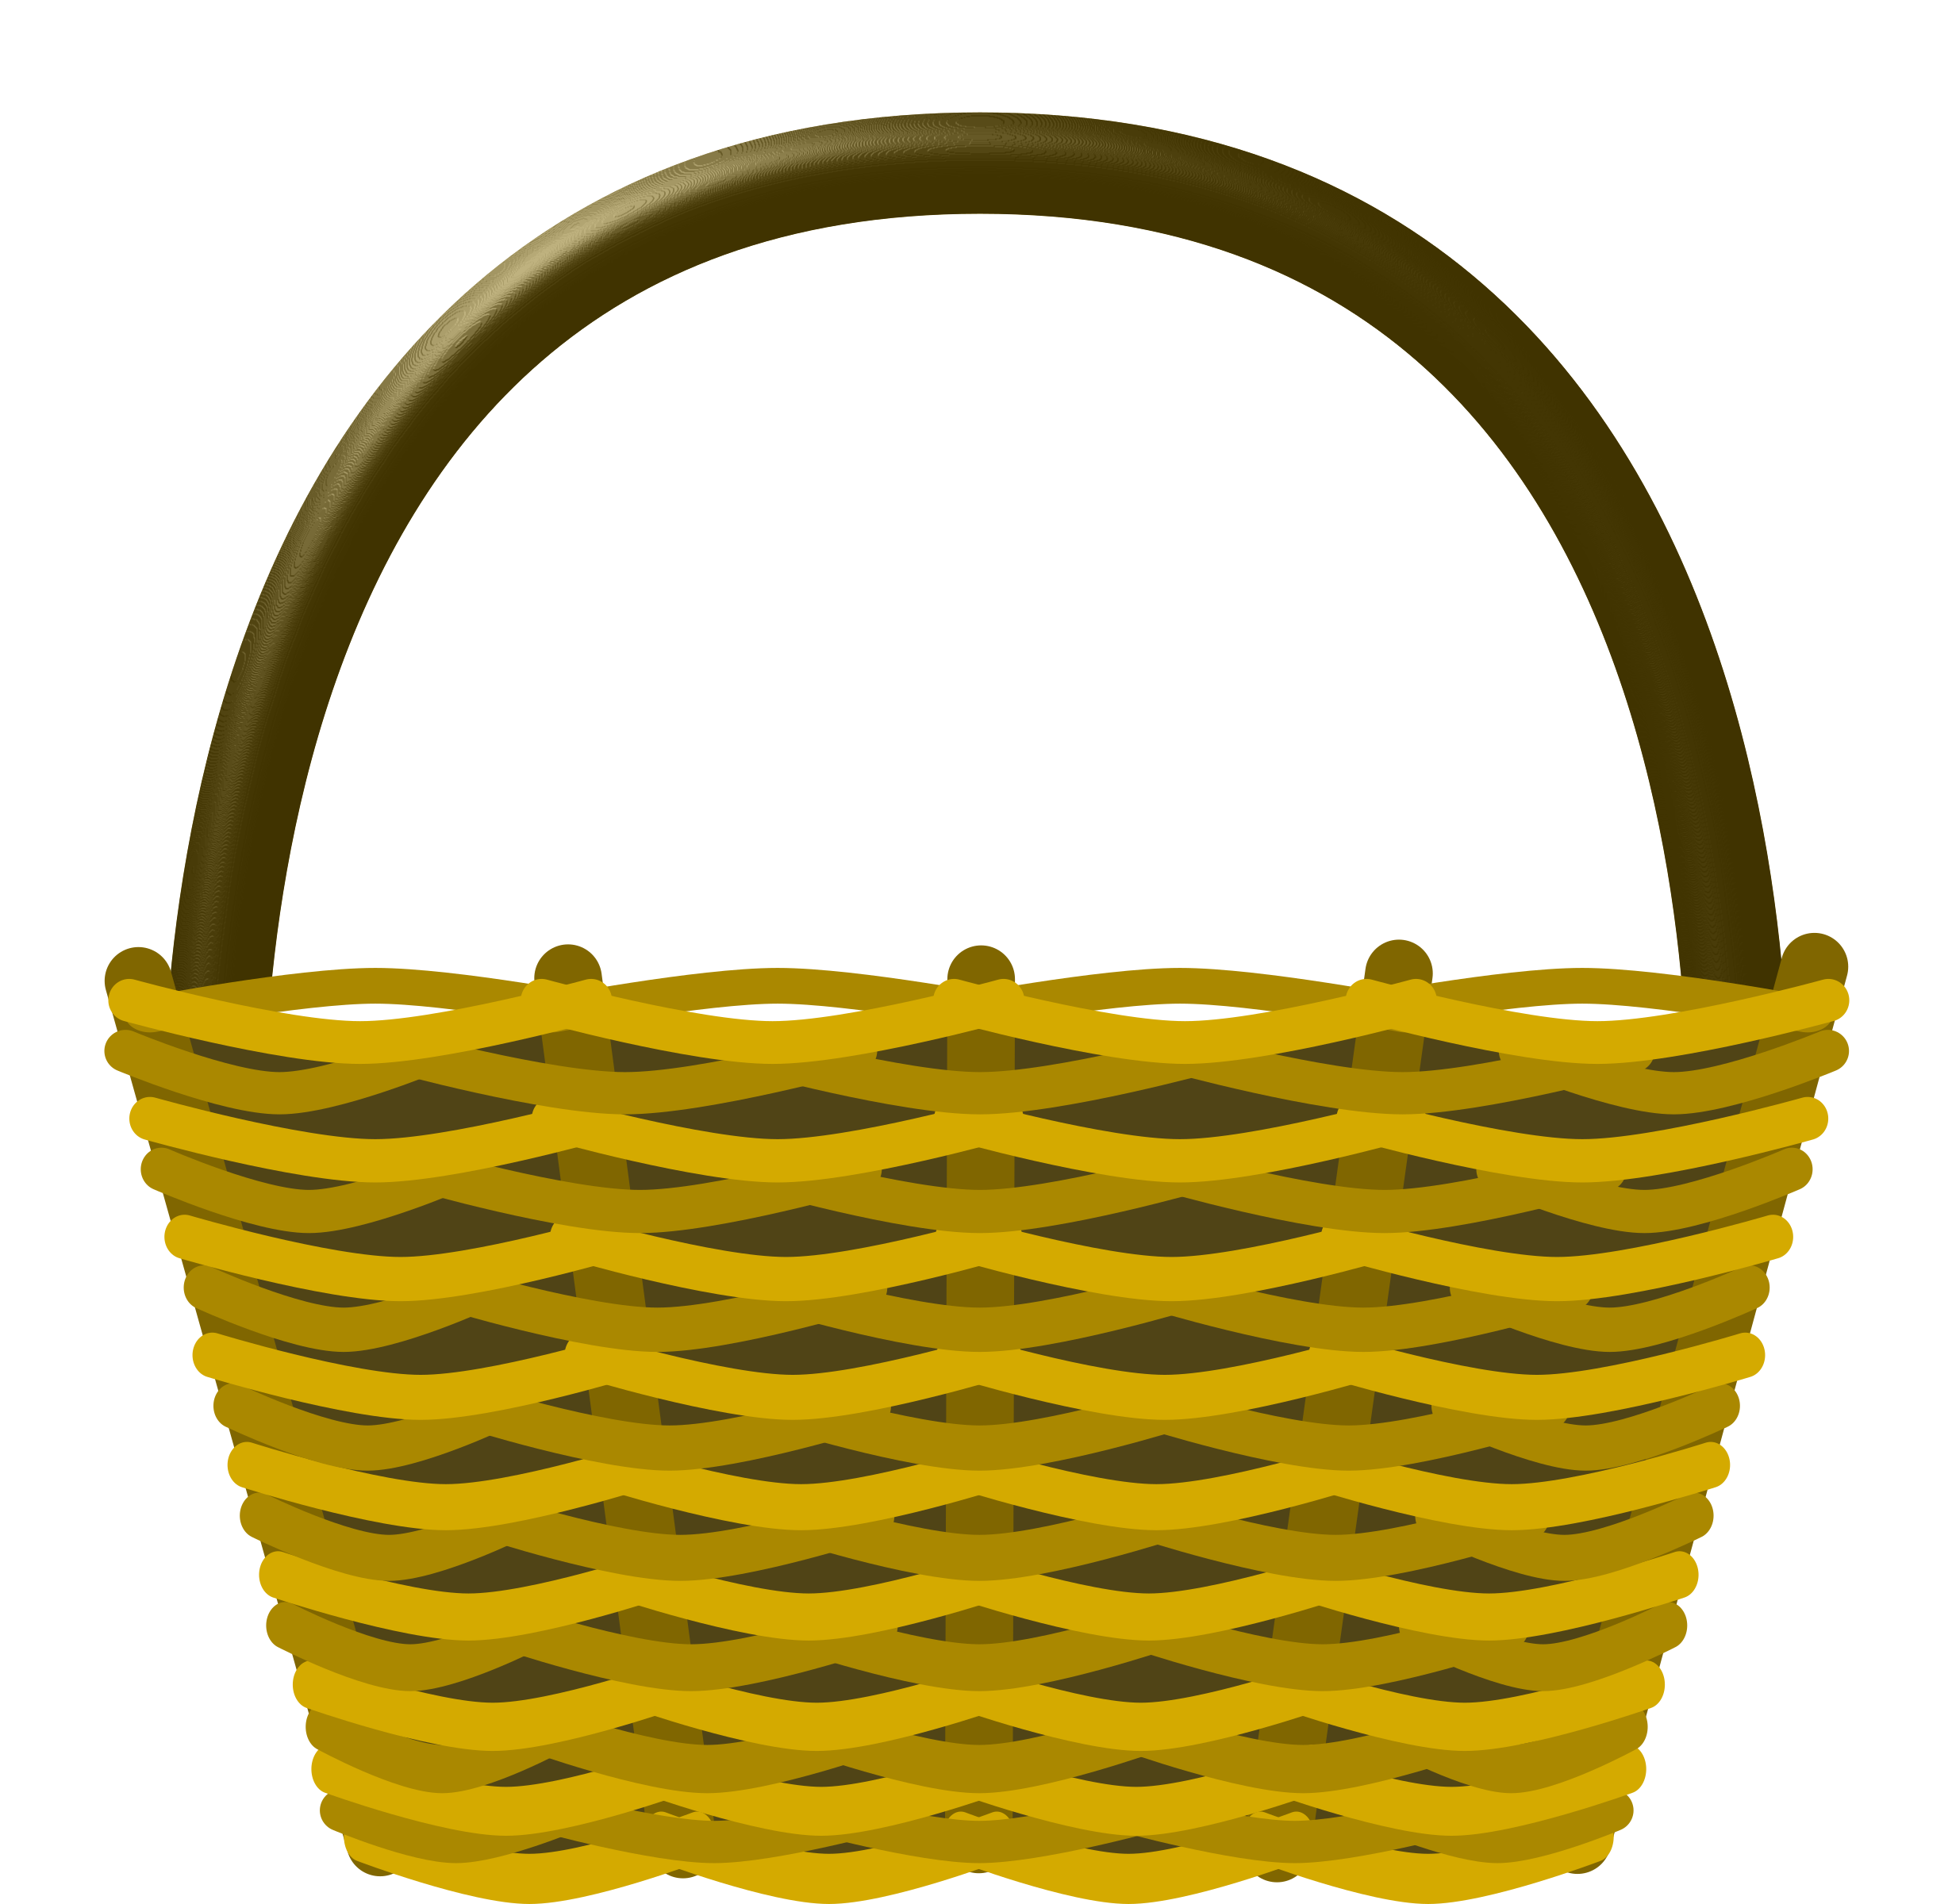 vector freeuse download Balloons clipart basket. Balloon images clip art.